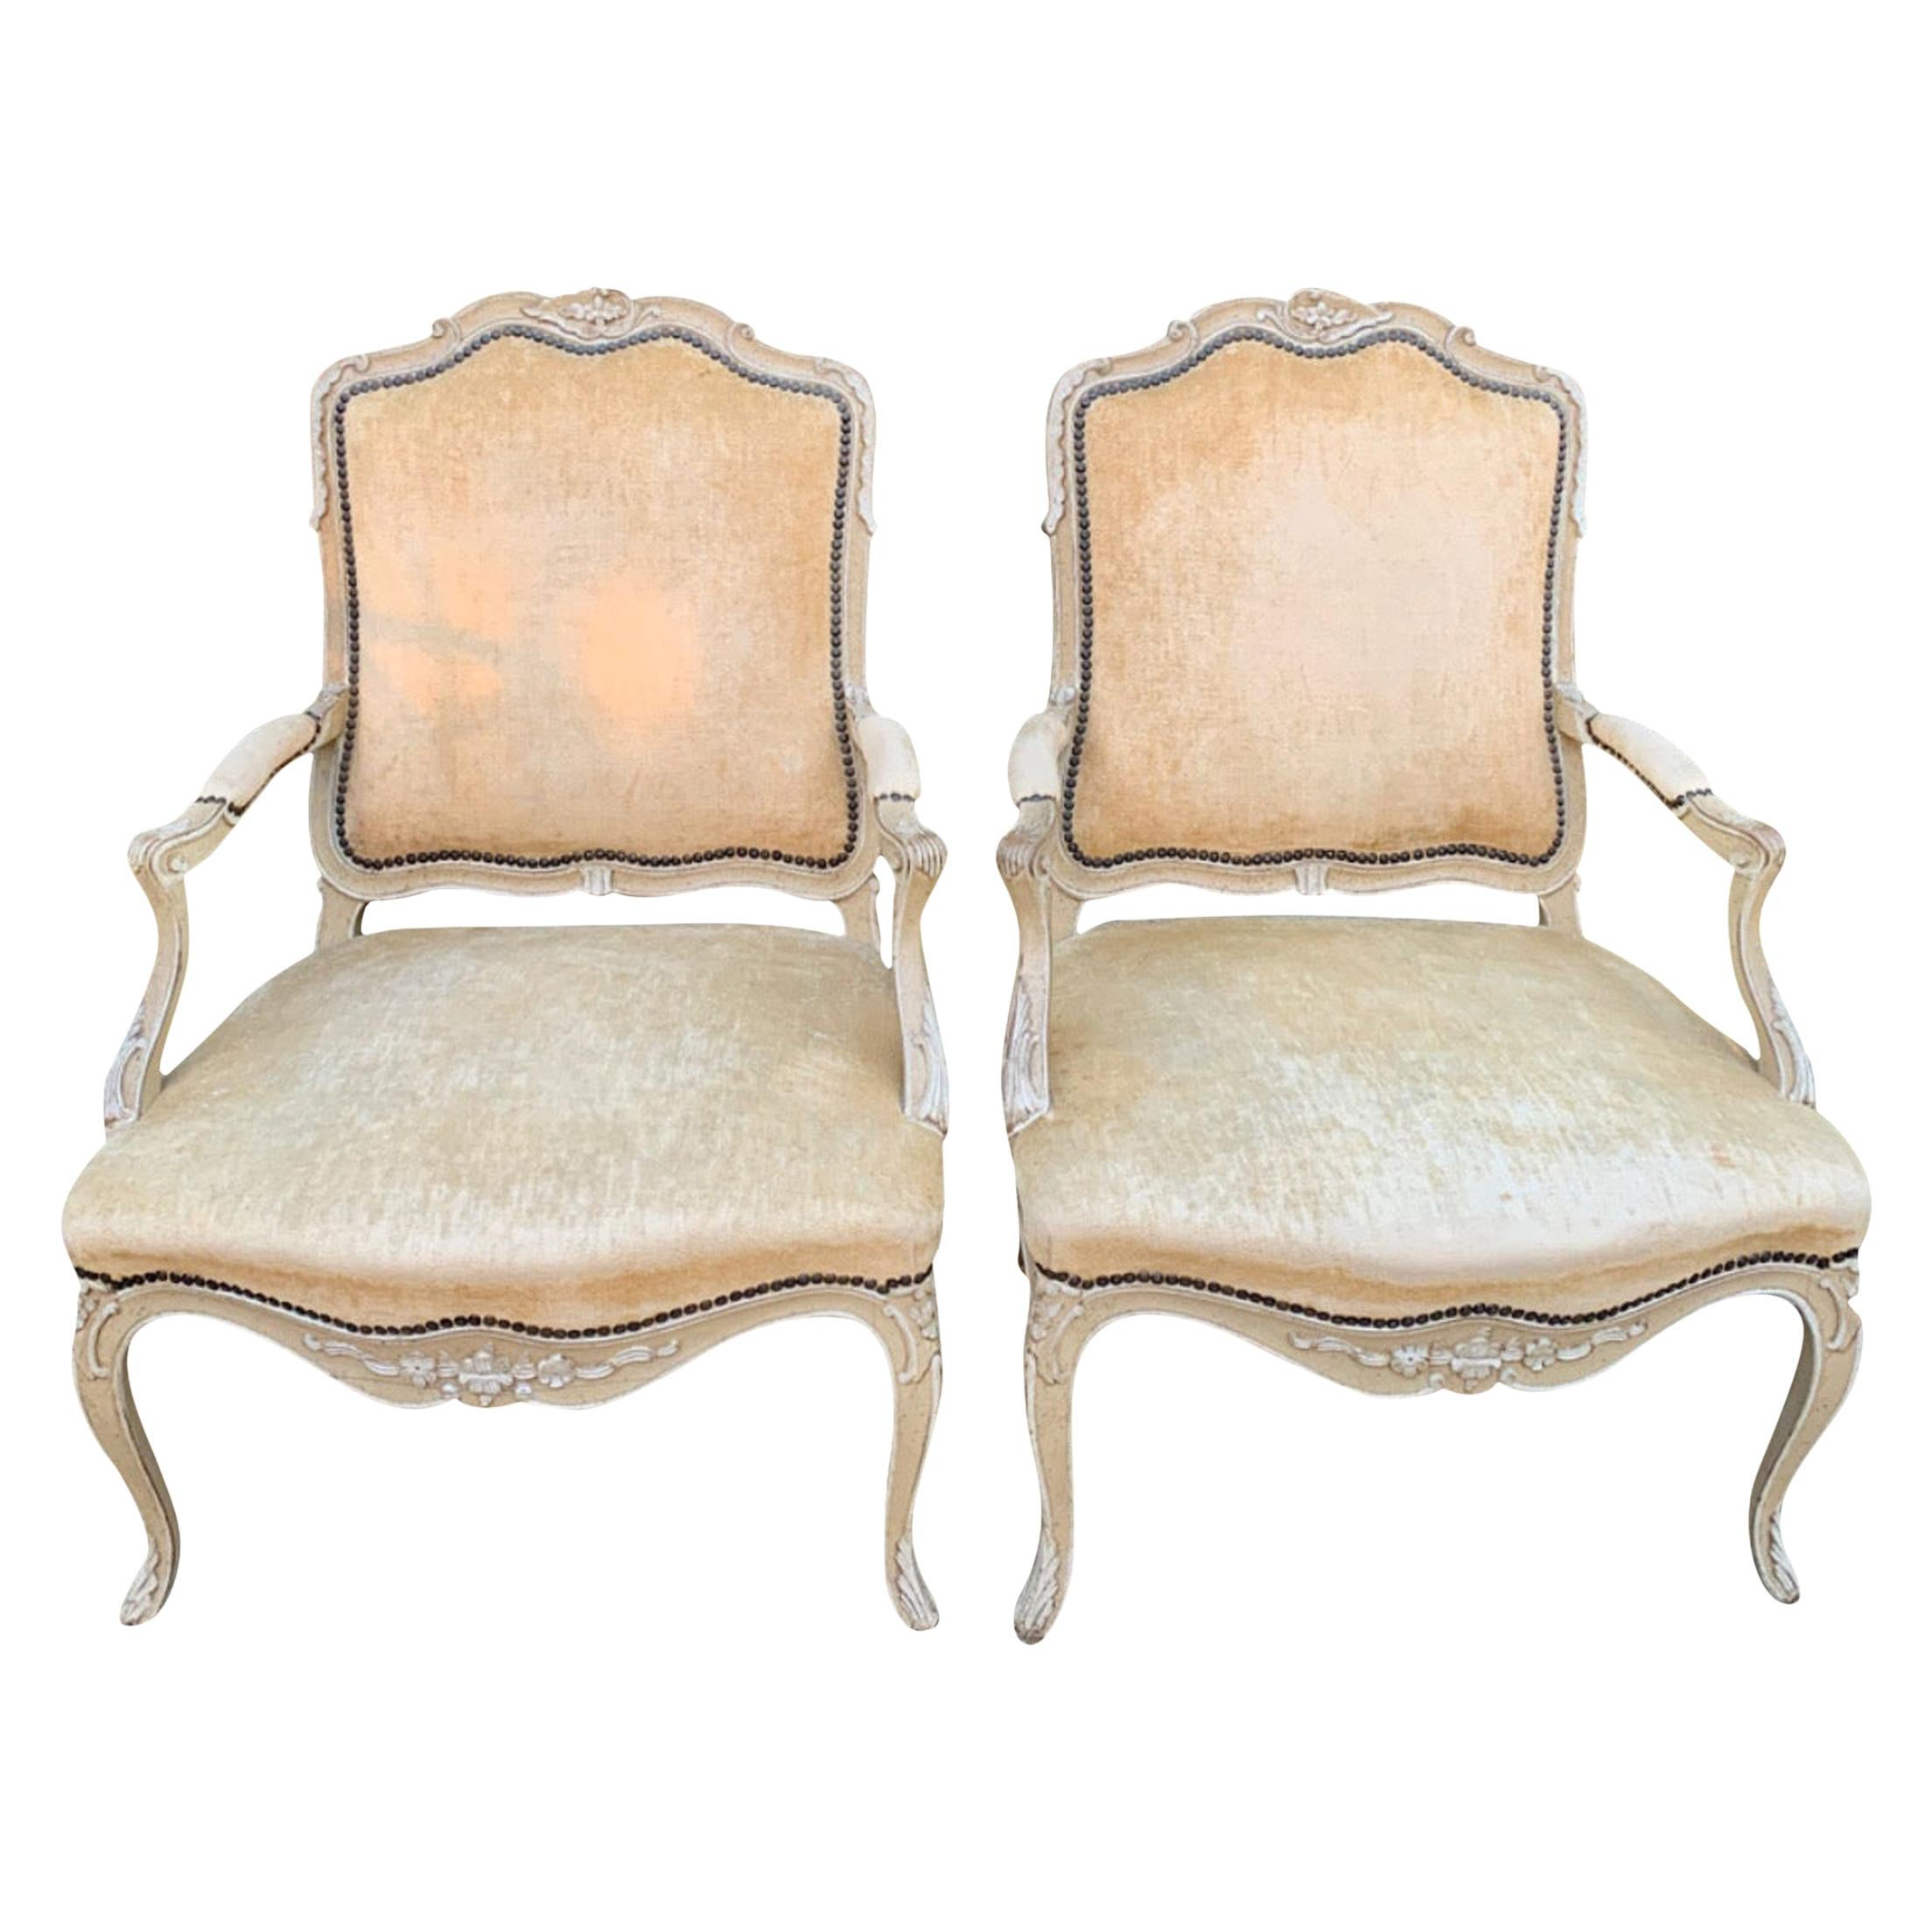 Pair of Bergere Fauteuil Chairs in the Style of Louis XV